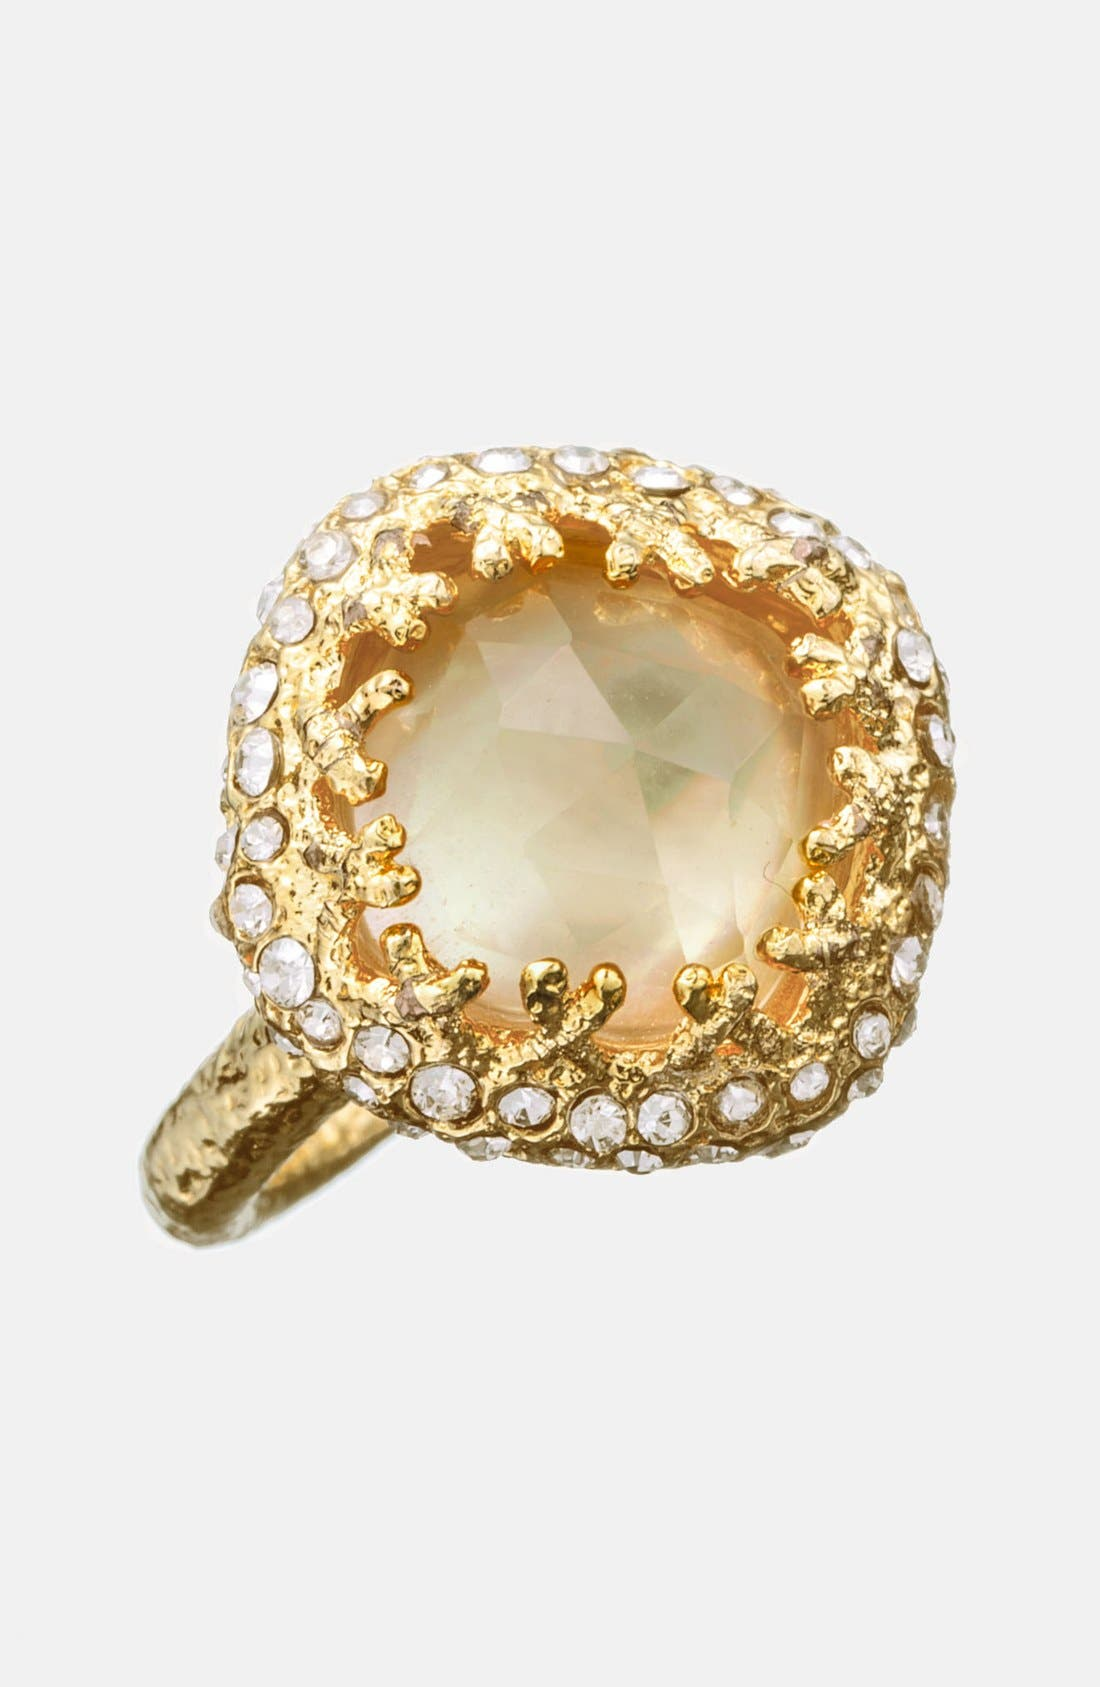 Main Image - Alexis Bittar 'Elements - Floral' Stone Ring